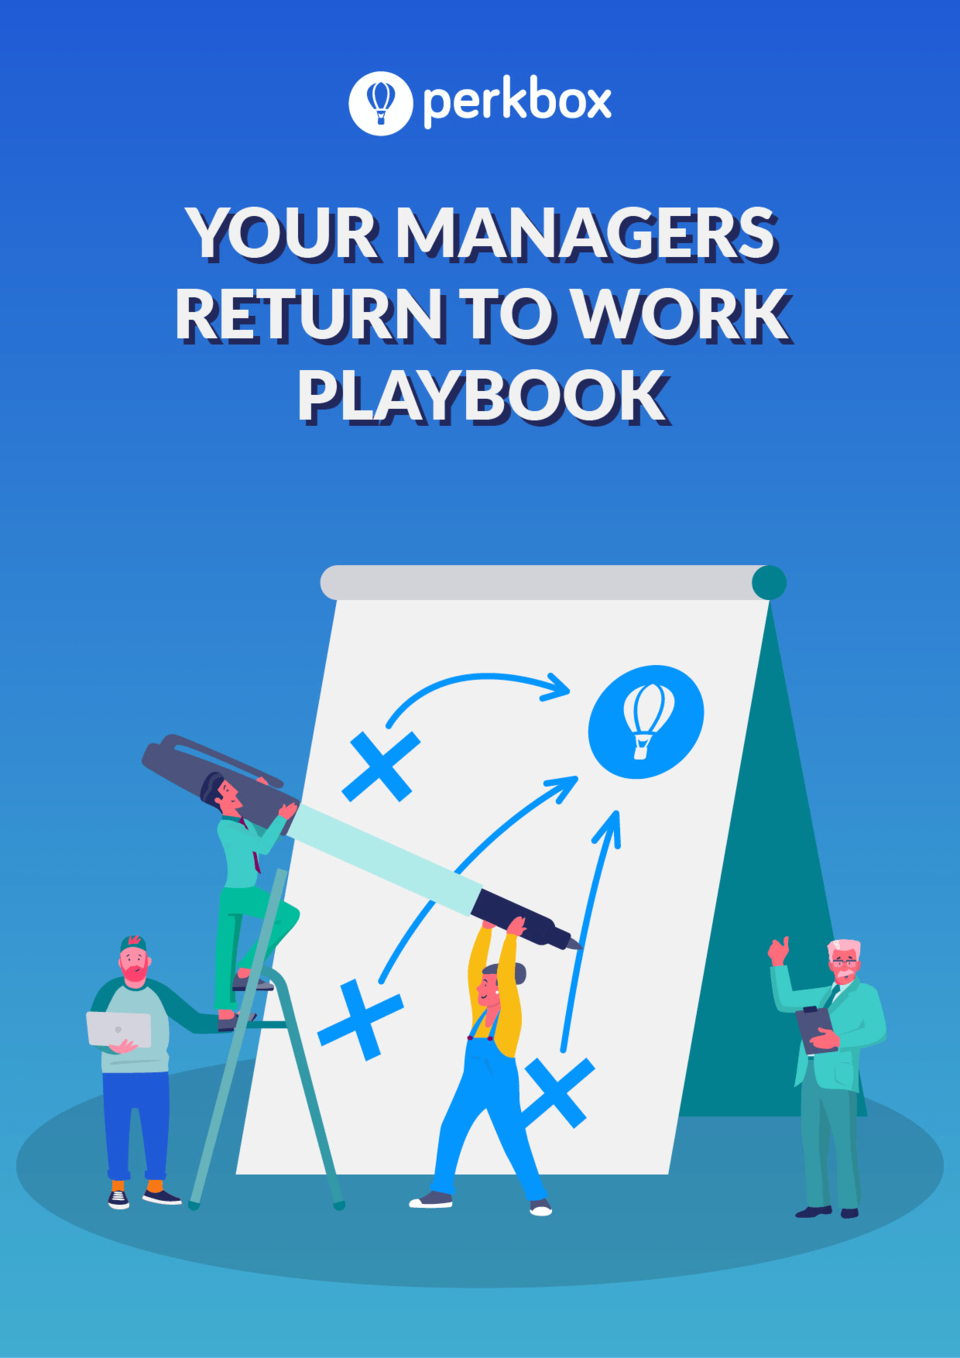 Return to work managers' playbook